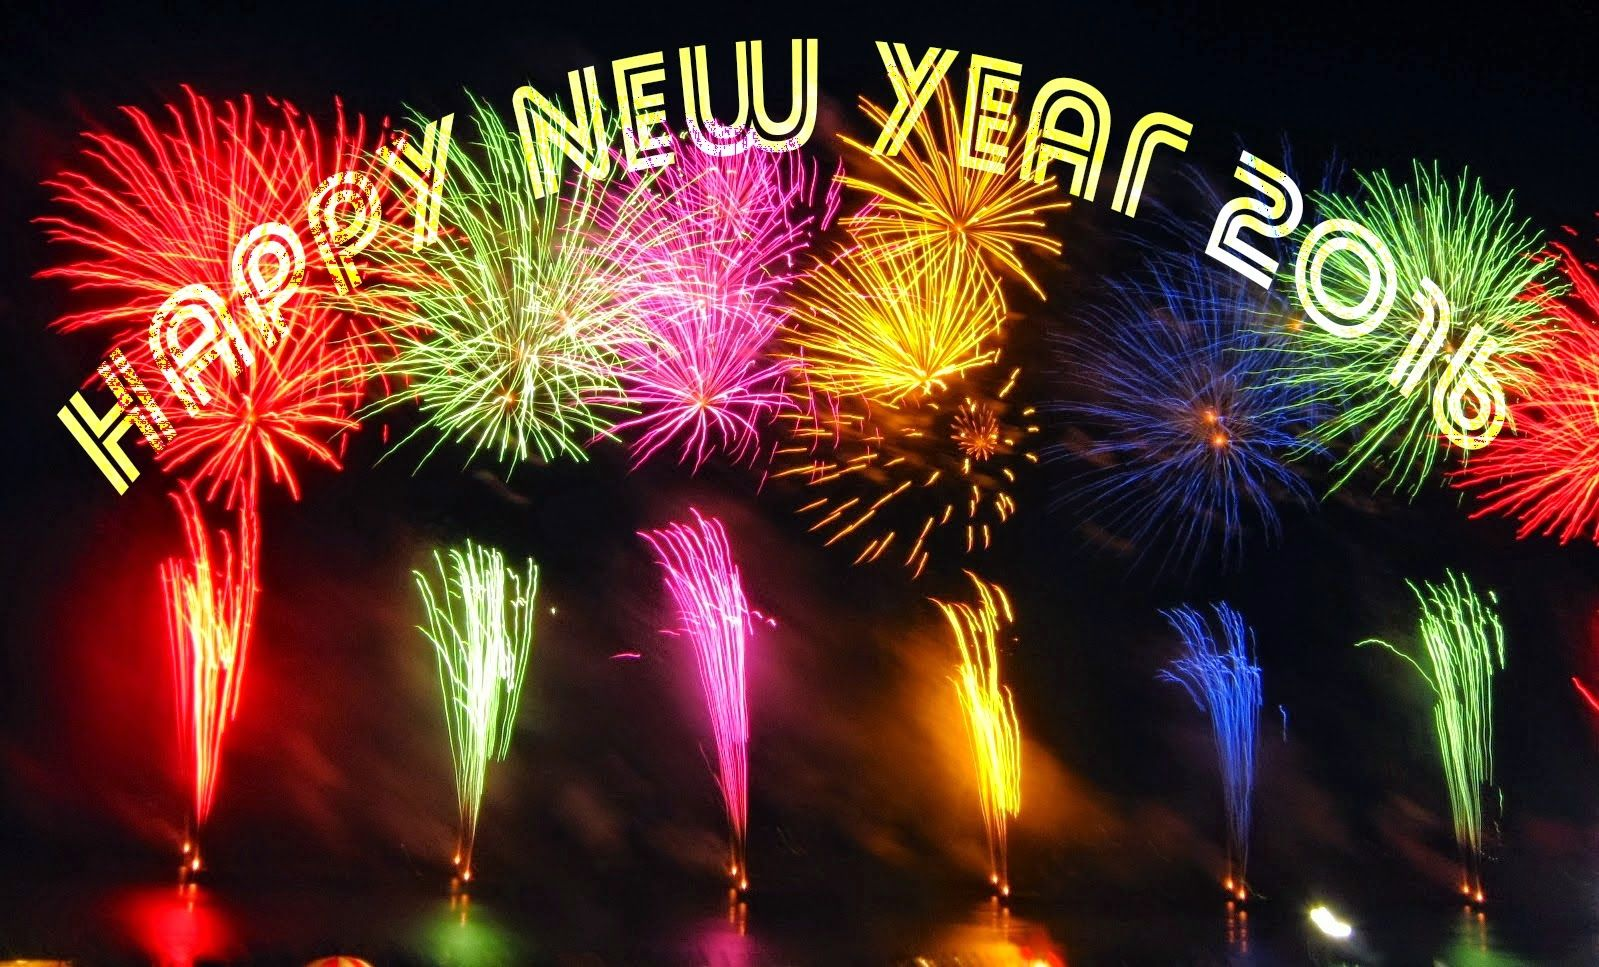 Happy New Year 2016 Hd Wallpapers Images Free Download New